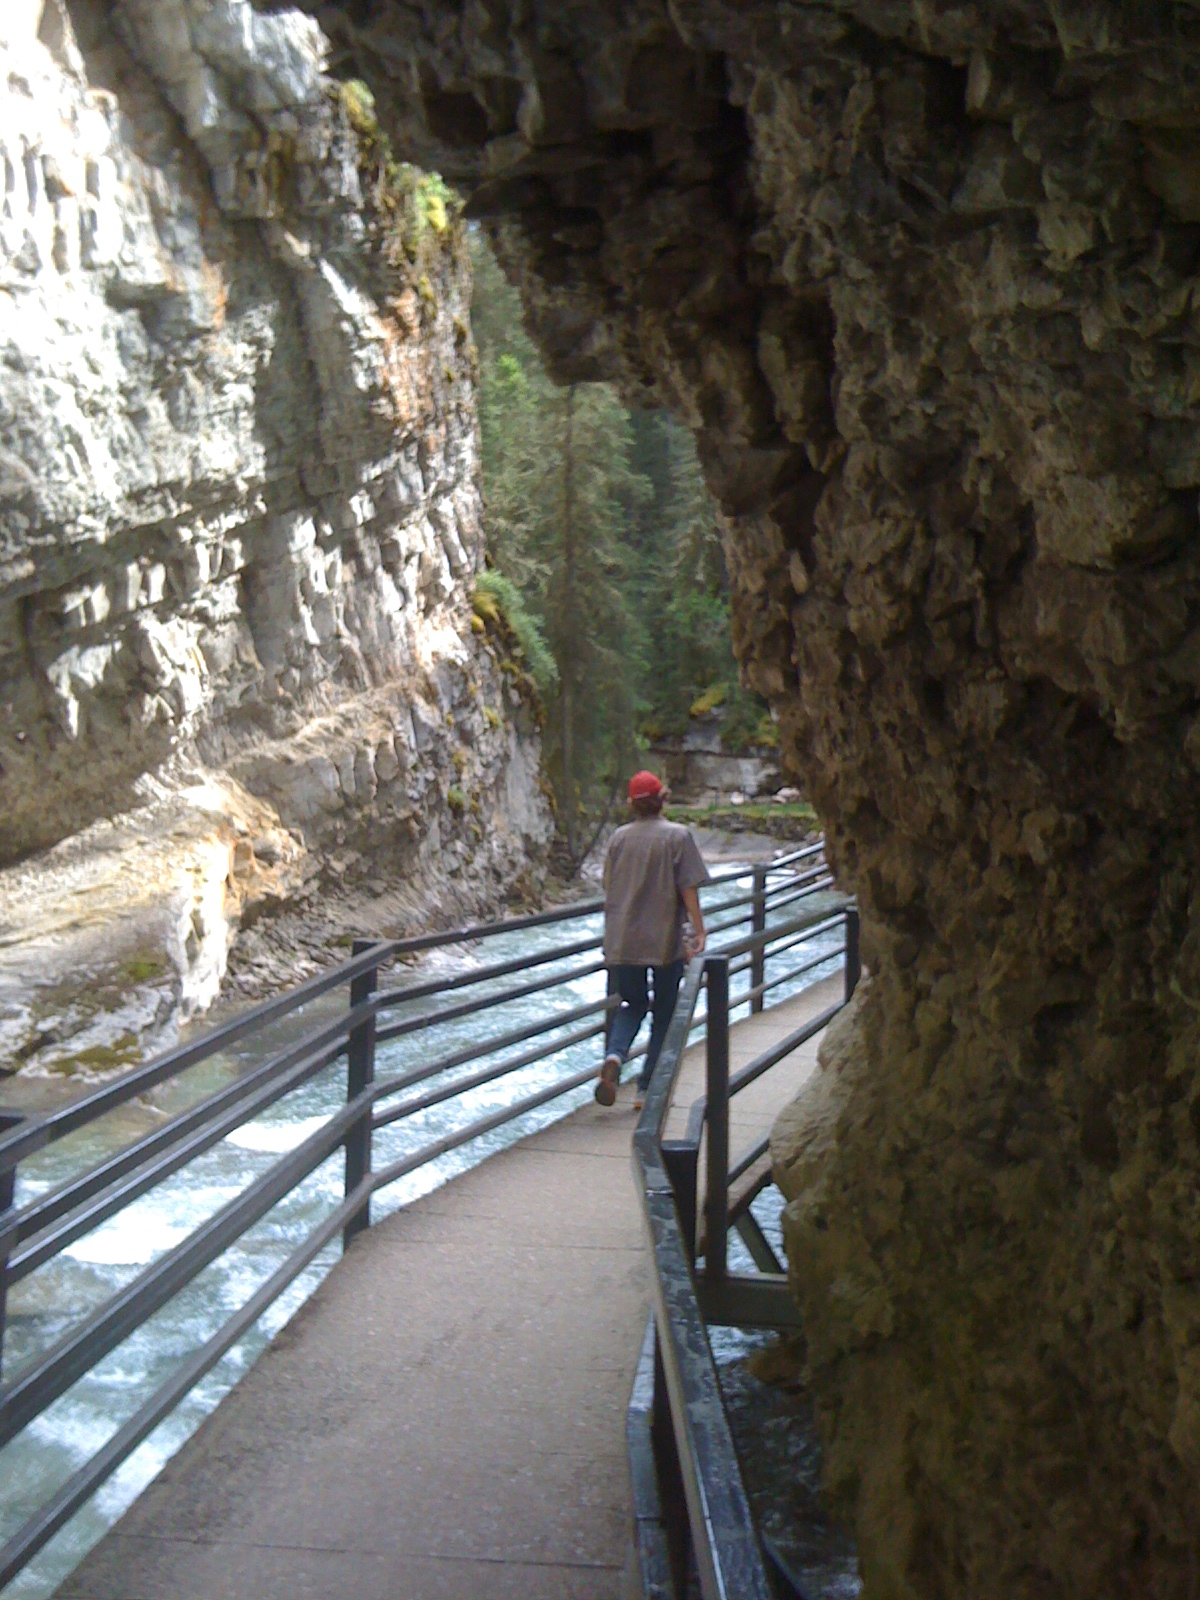 Johnston's Canyon - all paths deserve to be walked on